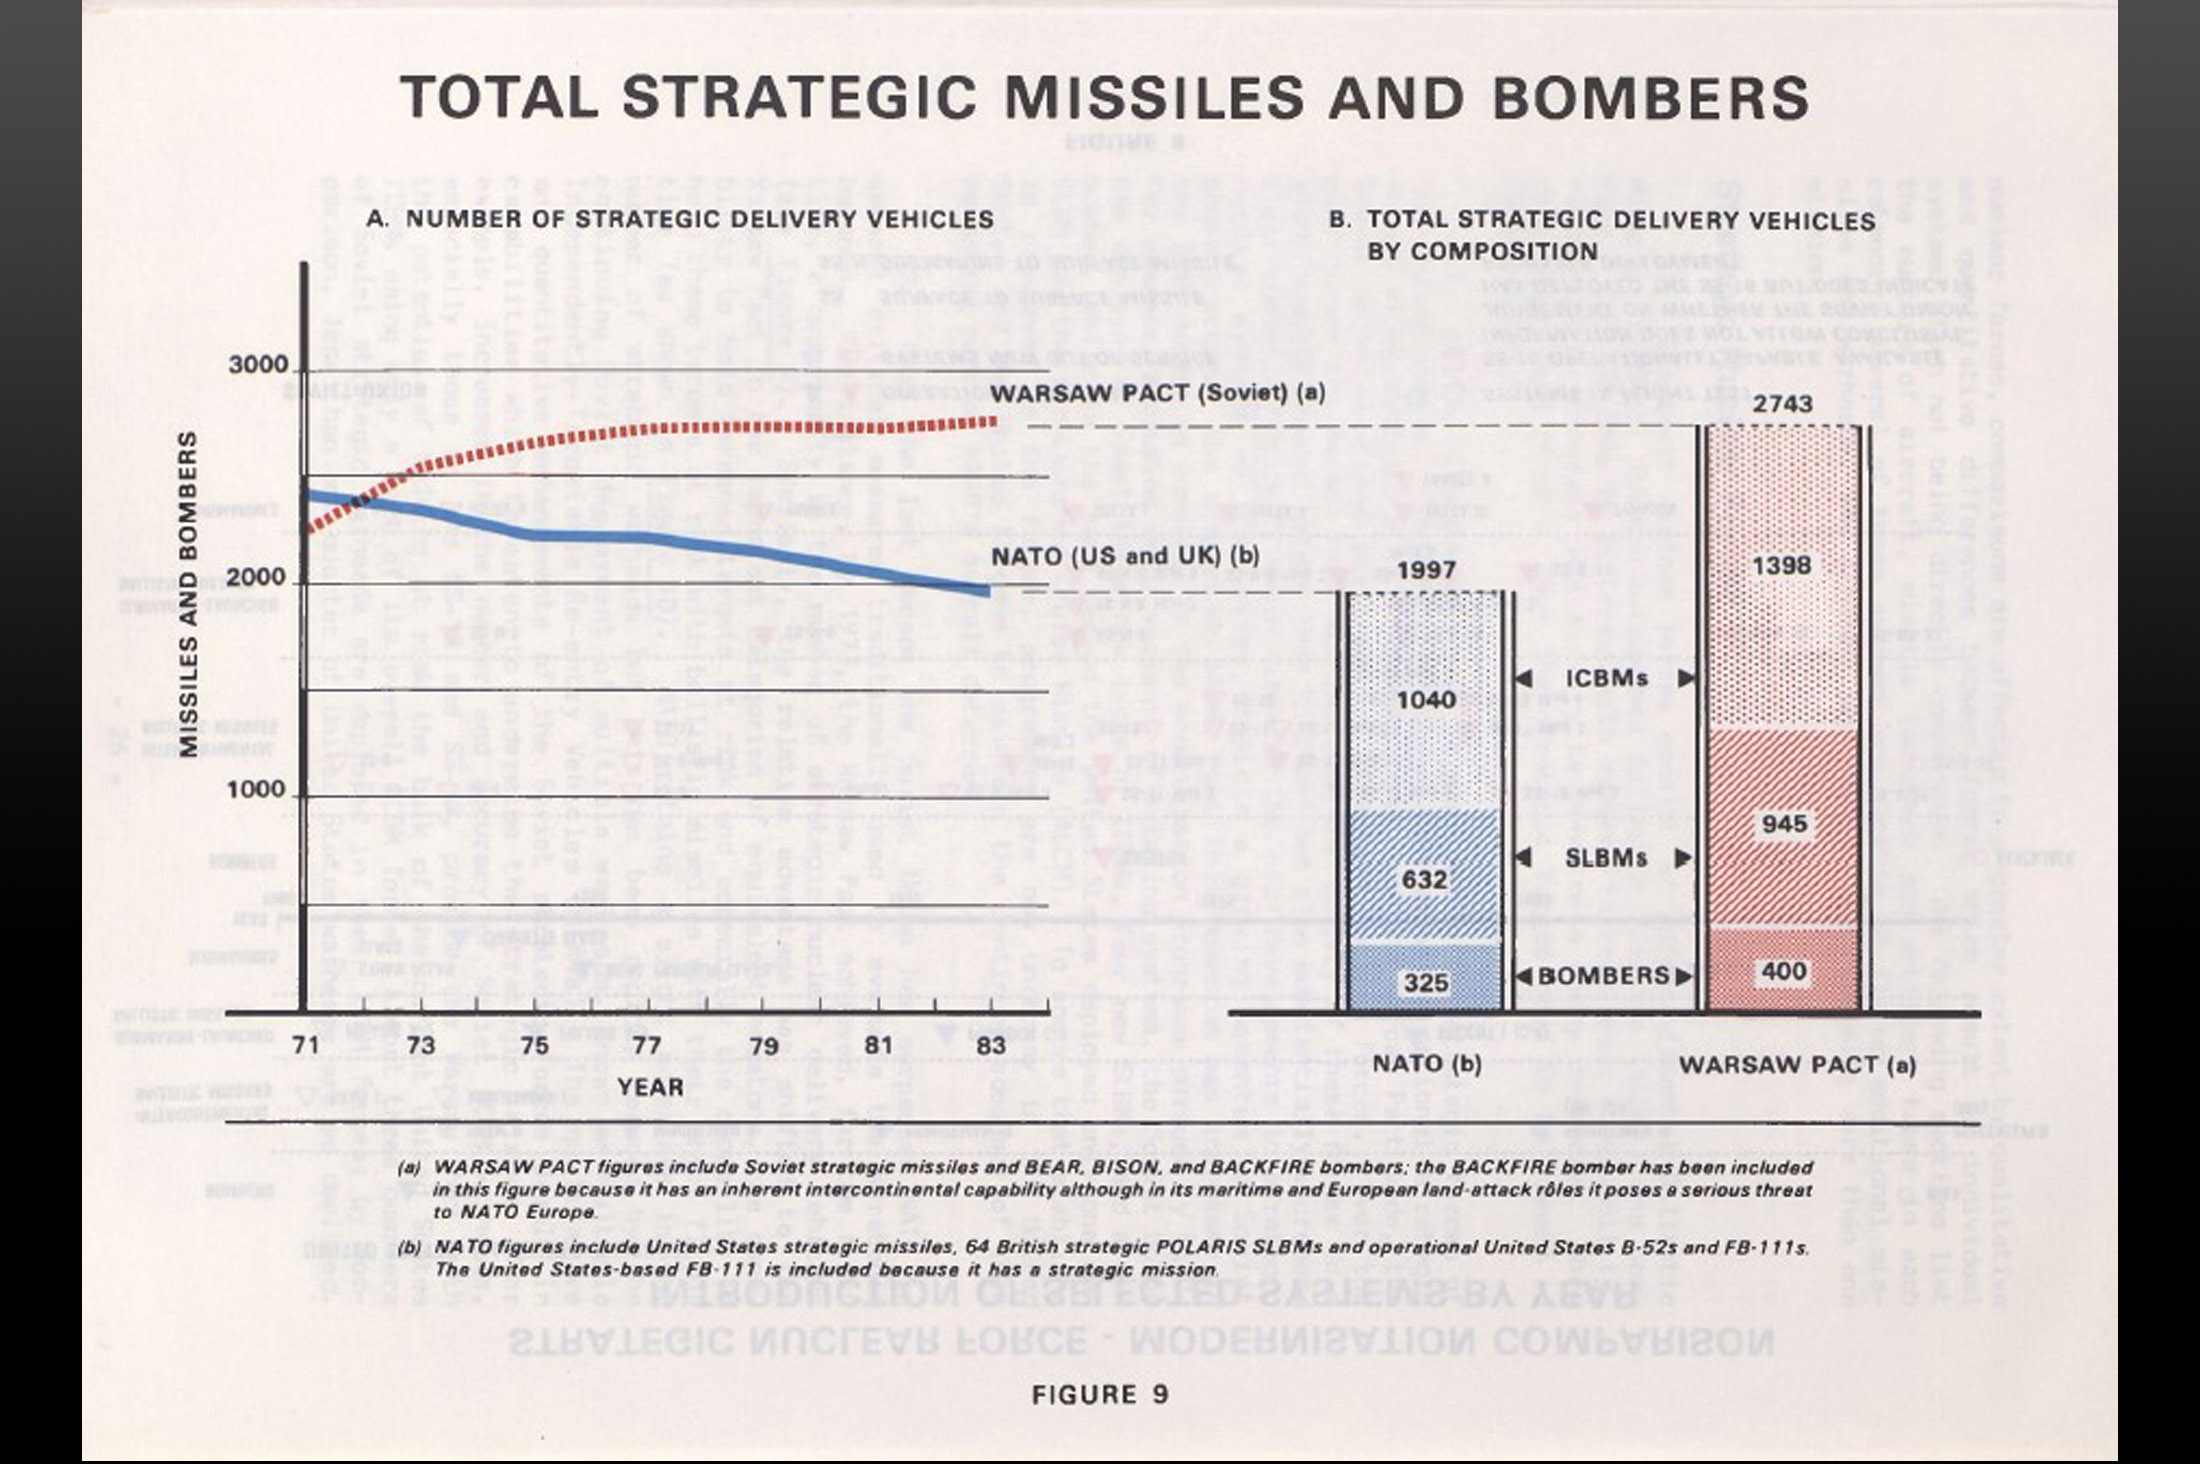 Total strategic missiles and bombers